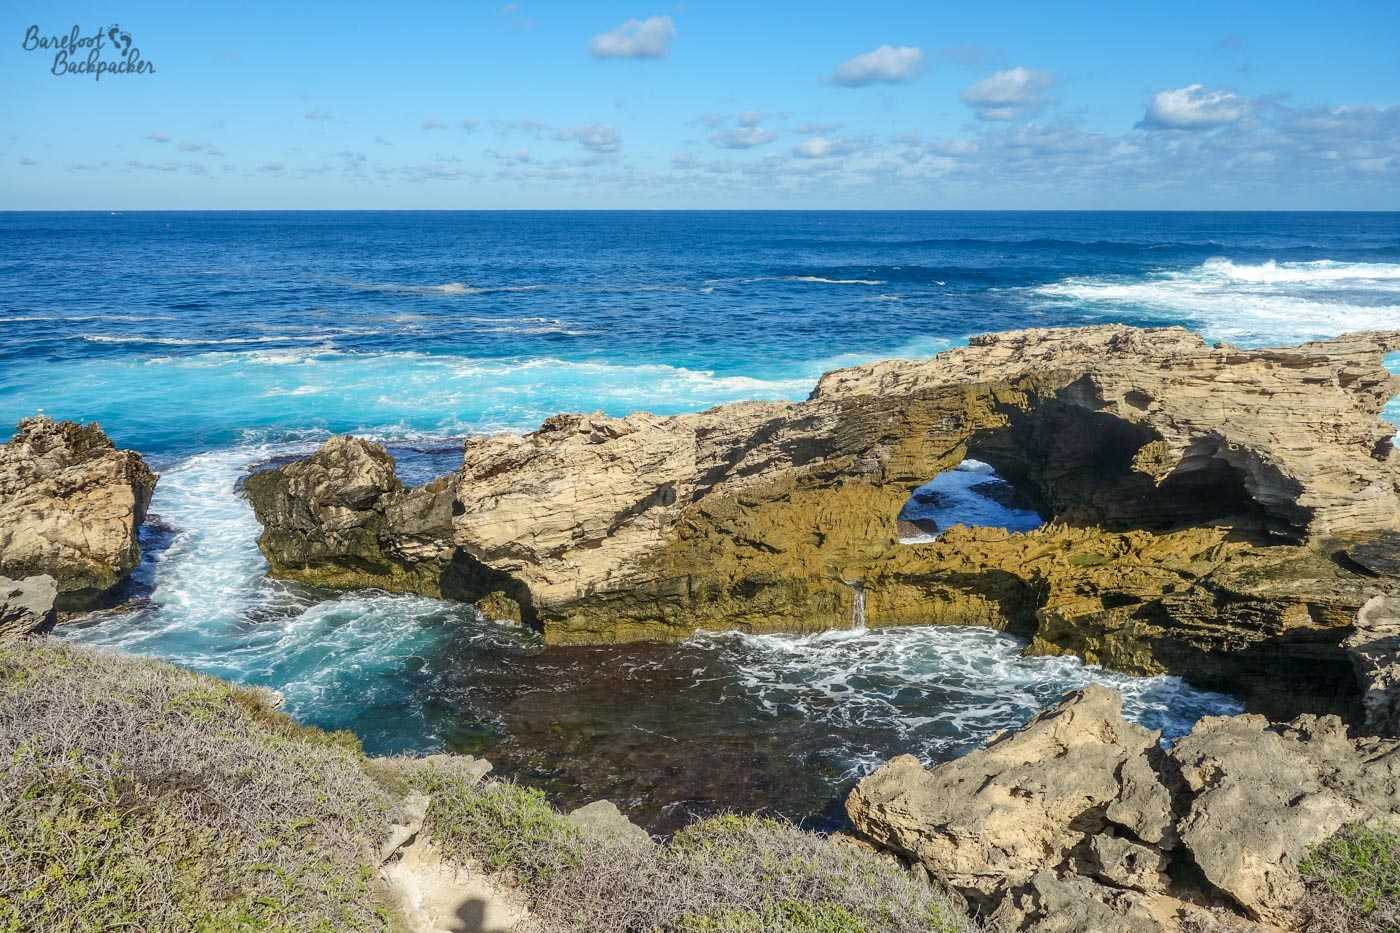 One of the many series of rock features near to West End. Much of this part of the coast of Rottnest Island has similar features – gnarled, light brown, jagged pieces of land mostly worn away in irregular ways by the actions of the sea, leading to natural caves, rock bridges, etc.